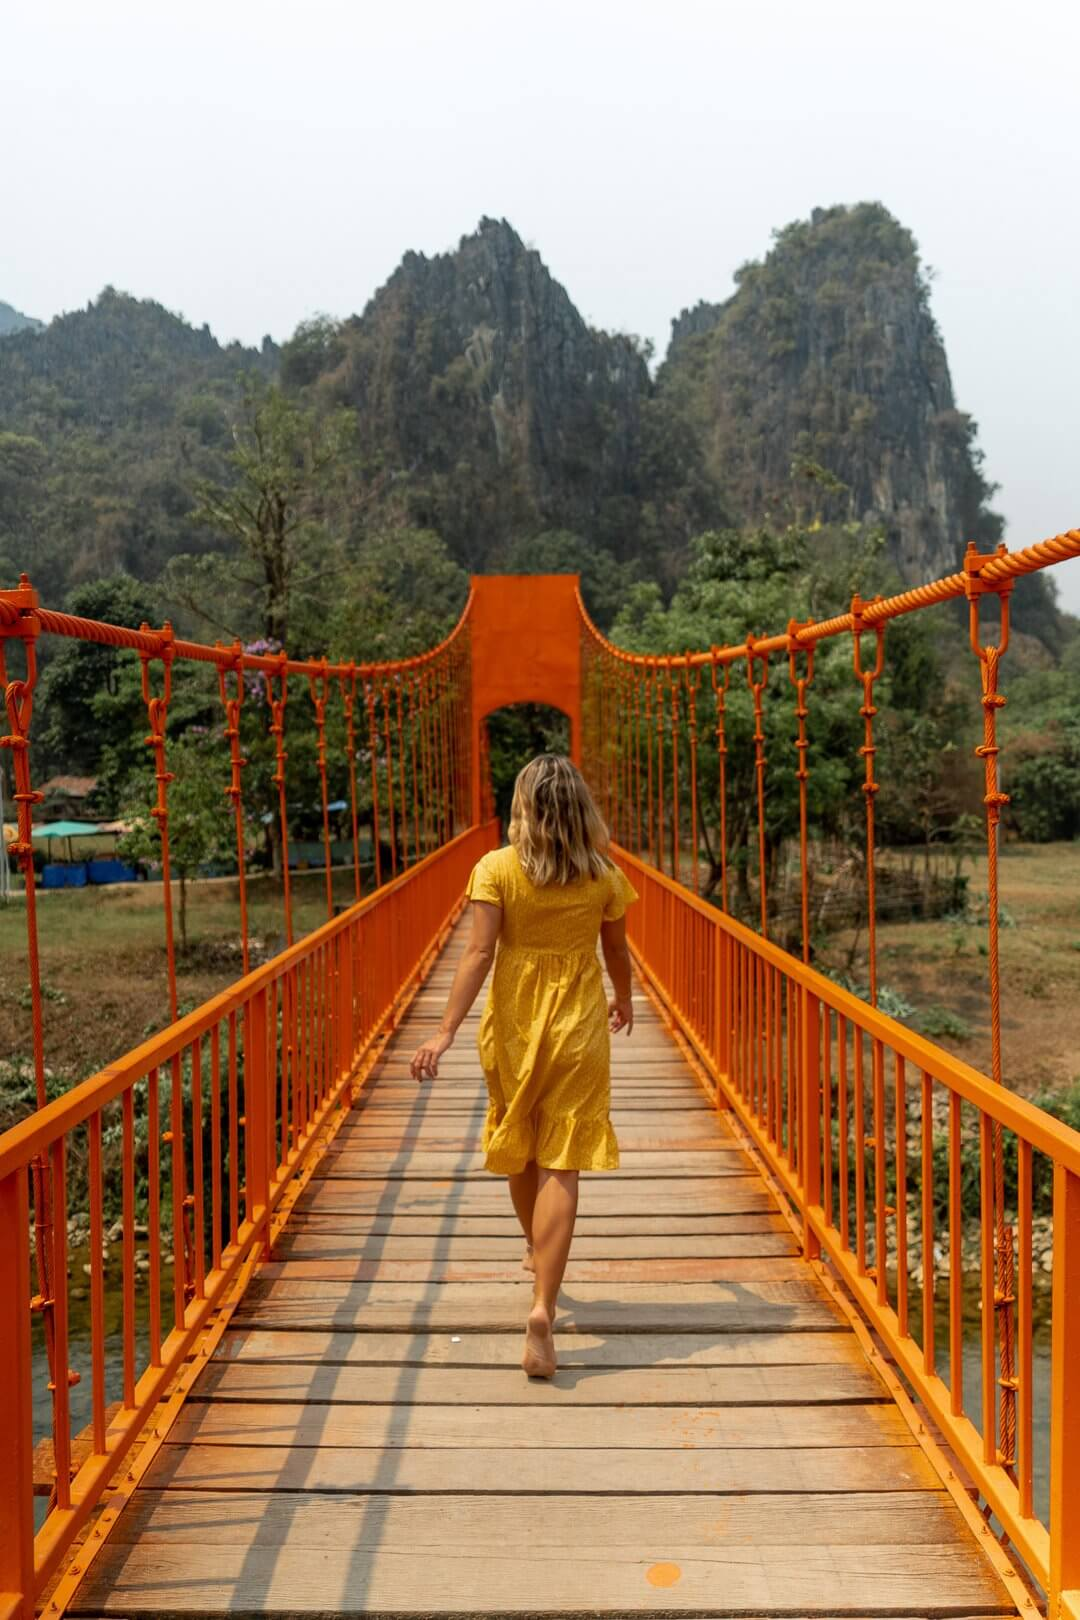 Girl in yellow dress running across an orange bridge in Vang Vieng, Laos